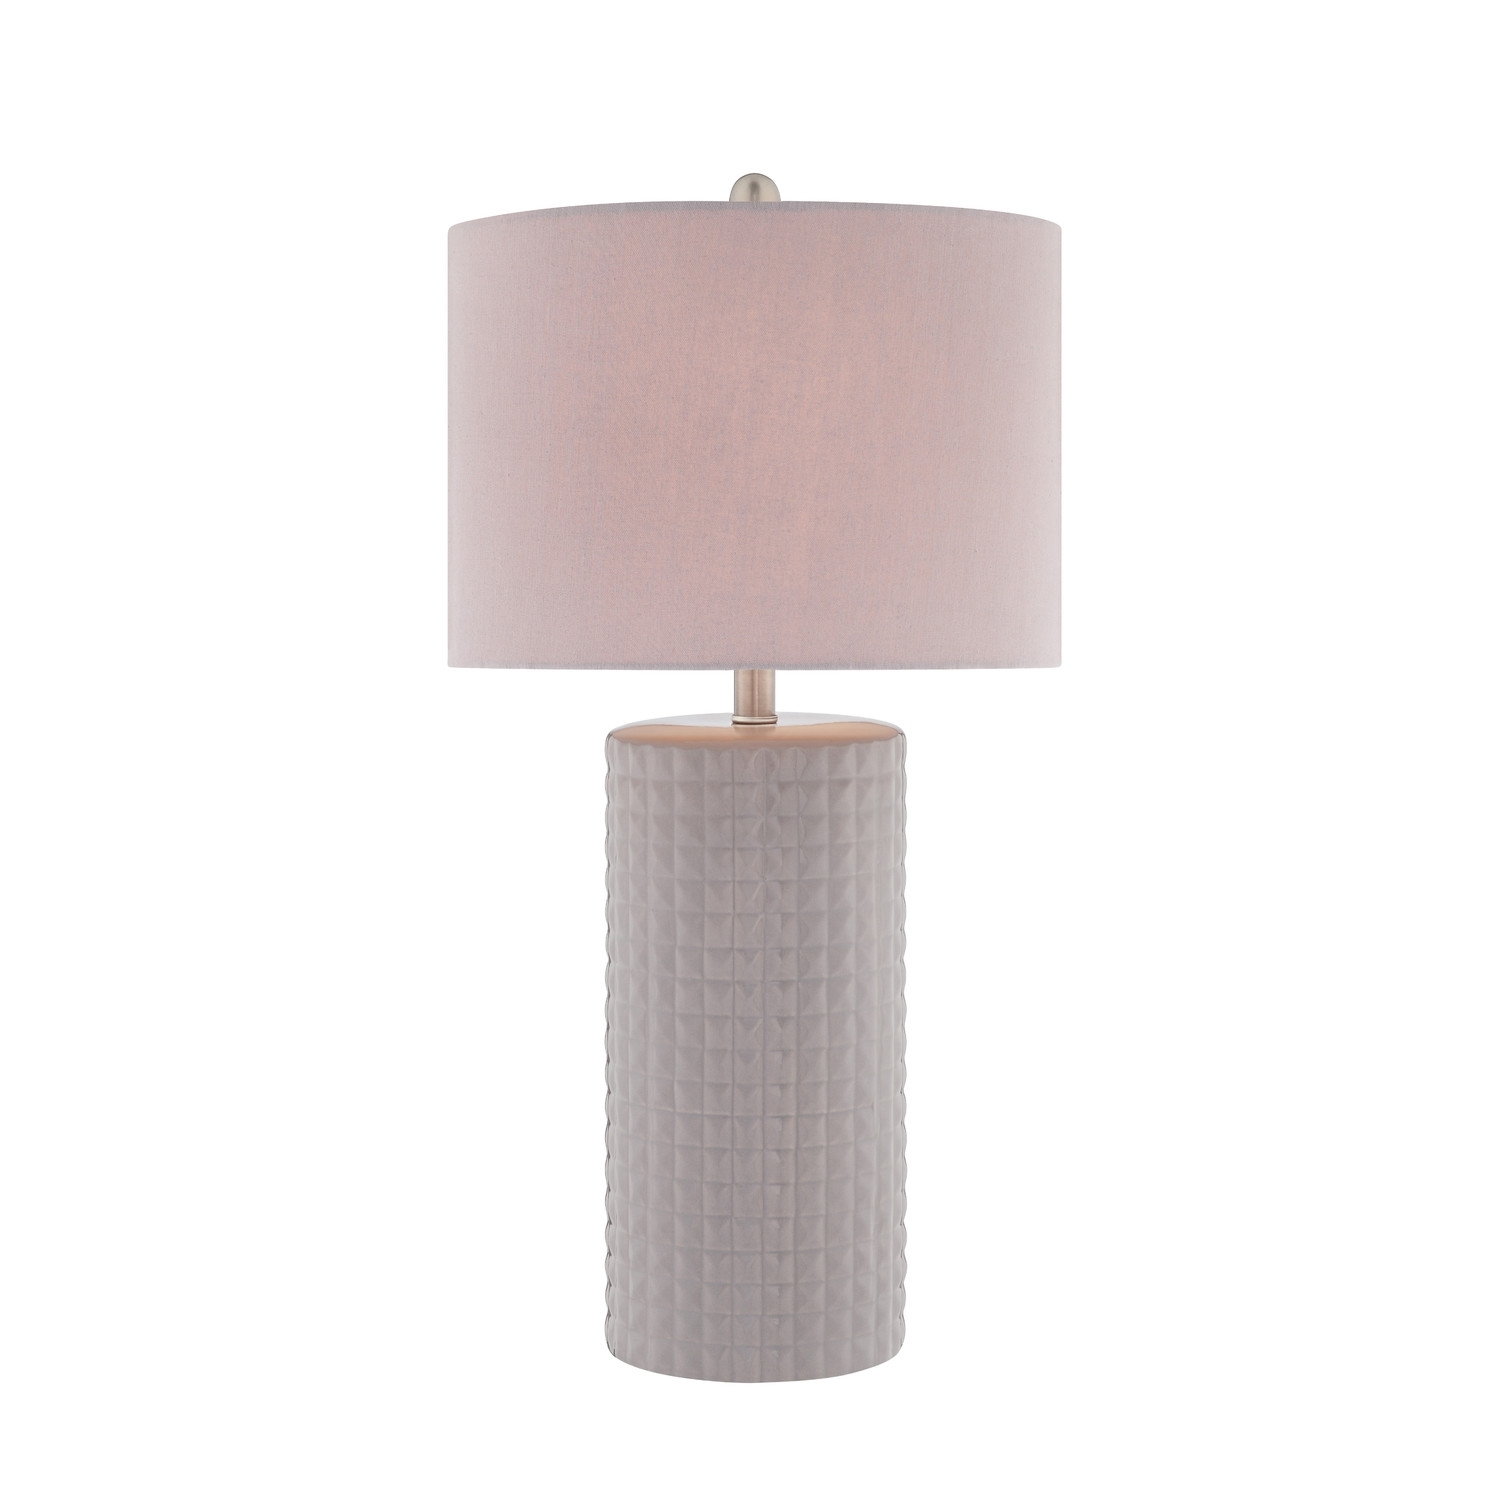 Inspiration about 3 Way Touch Table Lamps | Lighting And Ceiling Fans Within Living Room Touch Table Lamps (#5 of 15)